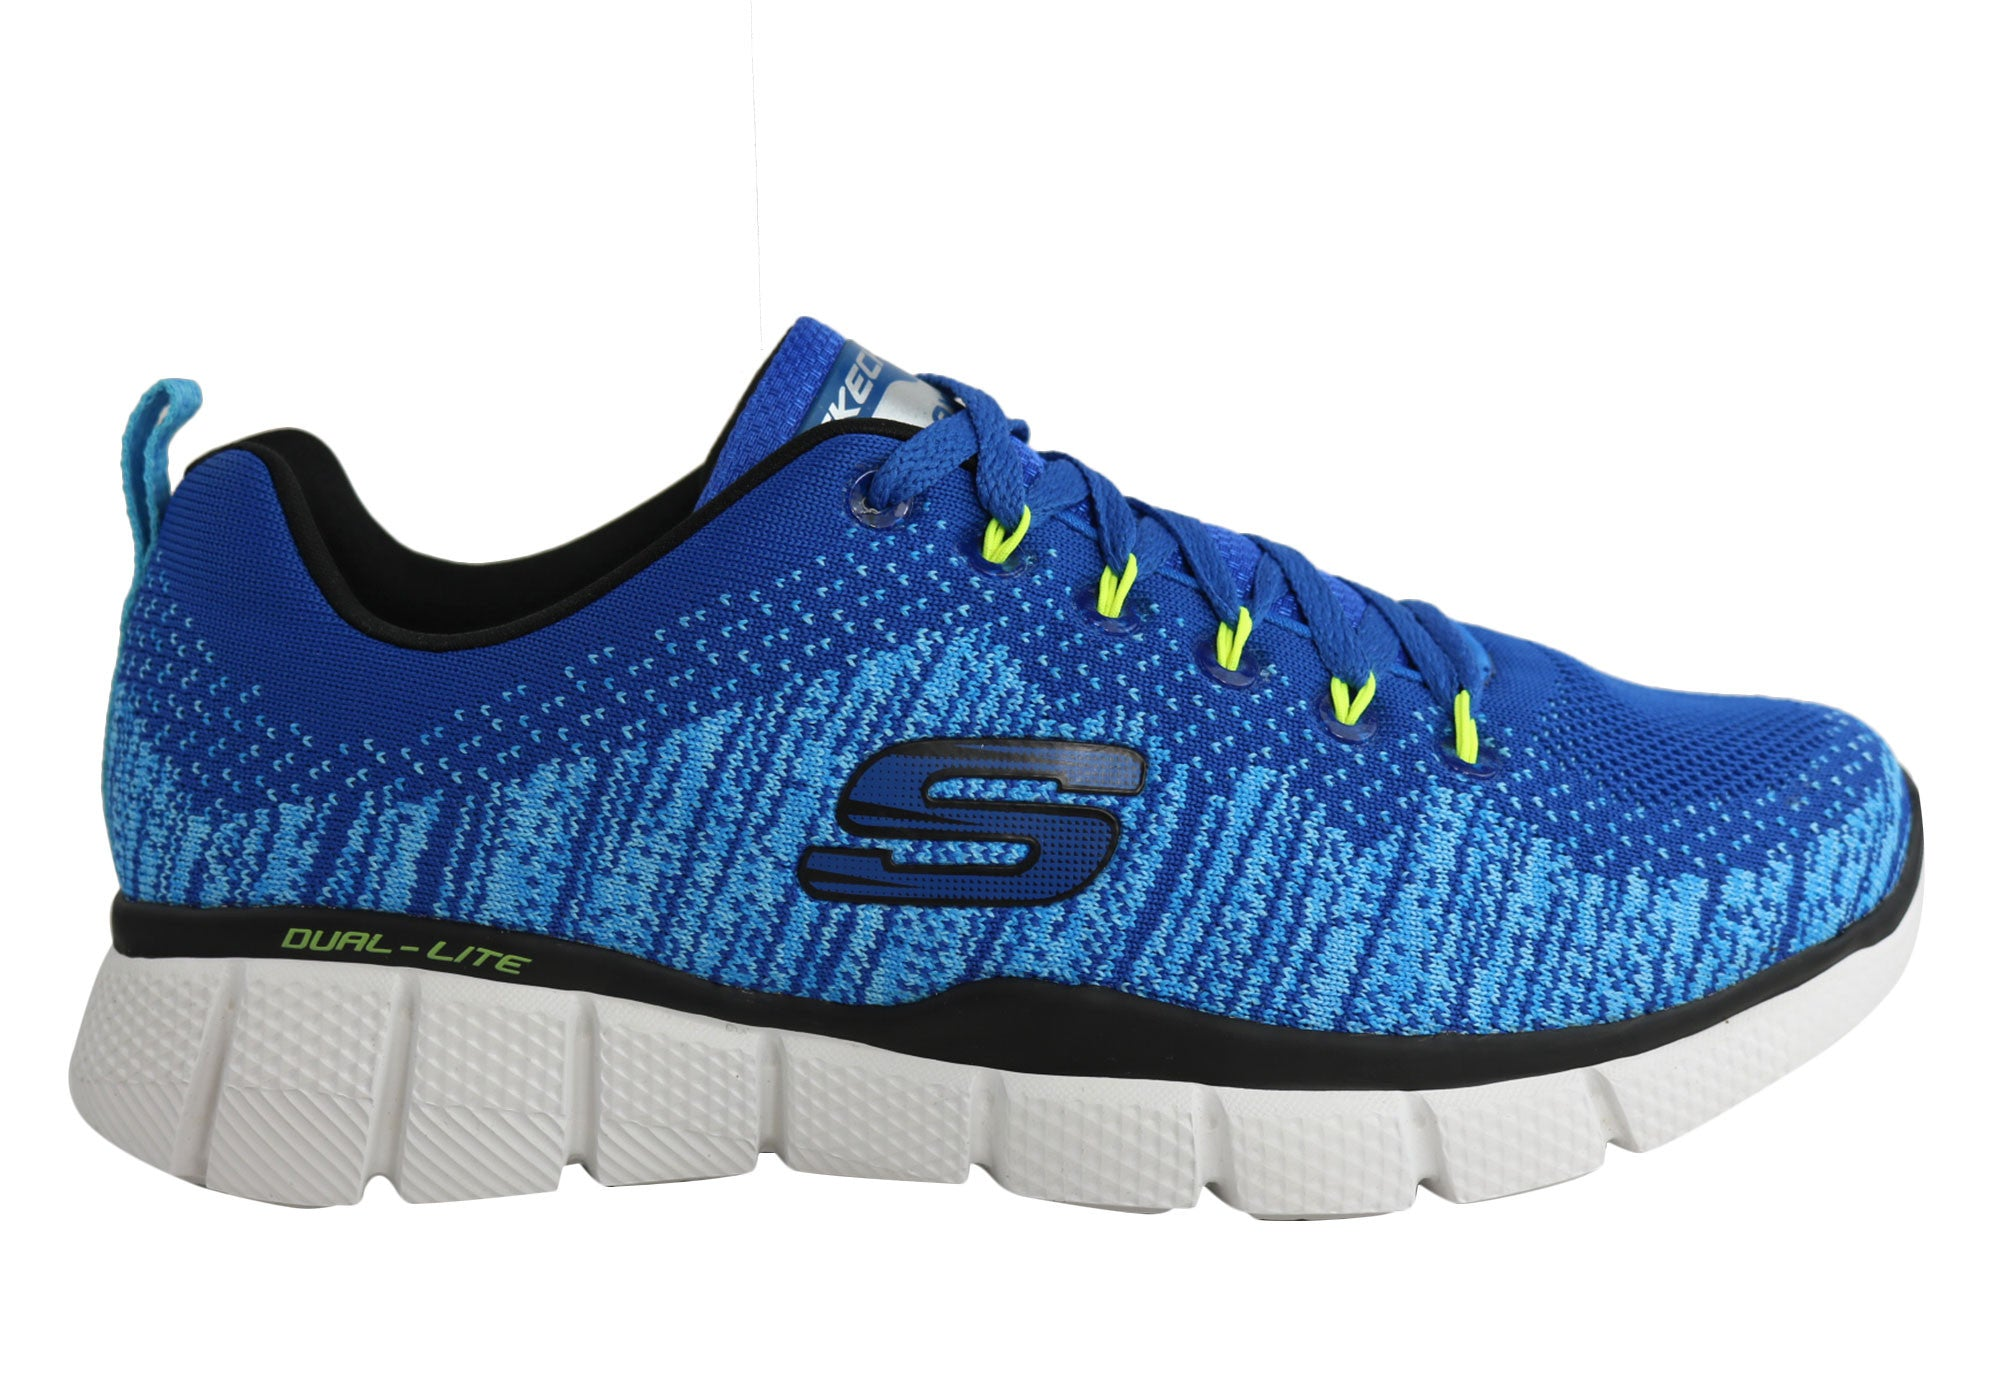 57ae62307447 Home Skechers Equalizer 2.0 Equal Game Mens Memory Foam Shoes. Blue  ...